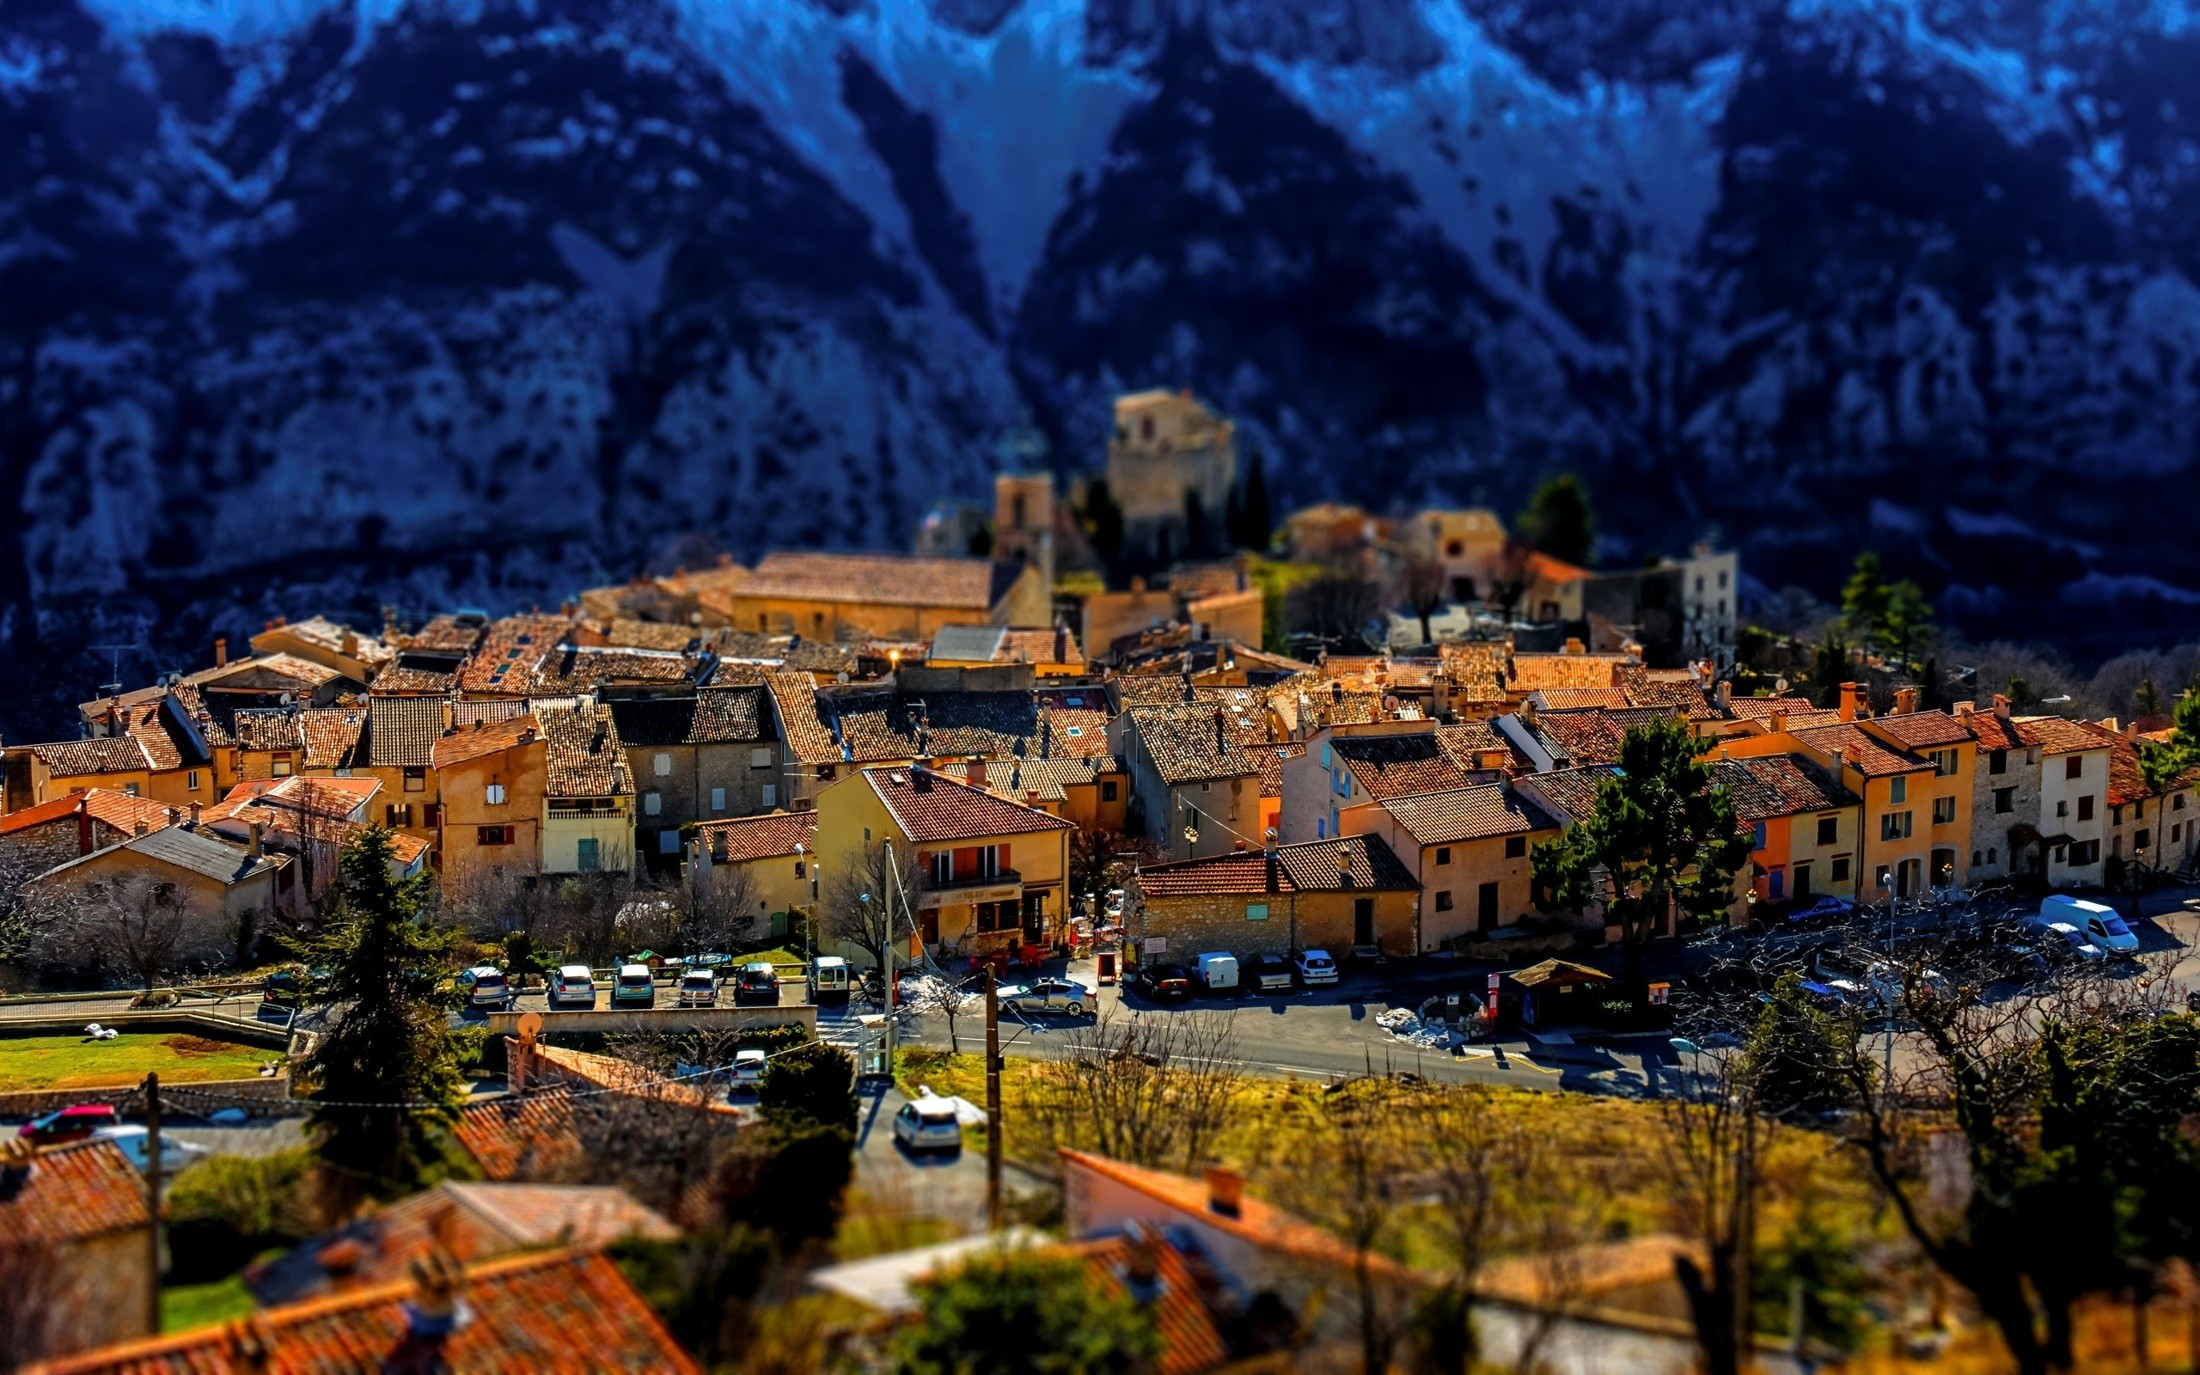 General 2200x1375 tilt shift village cityscape